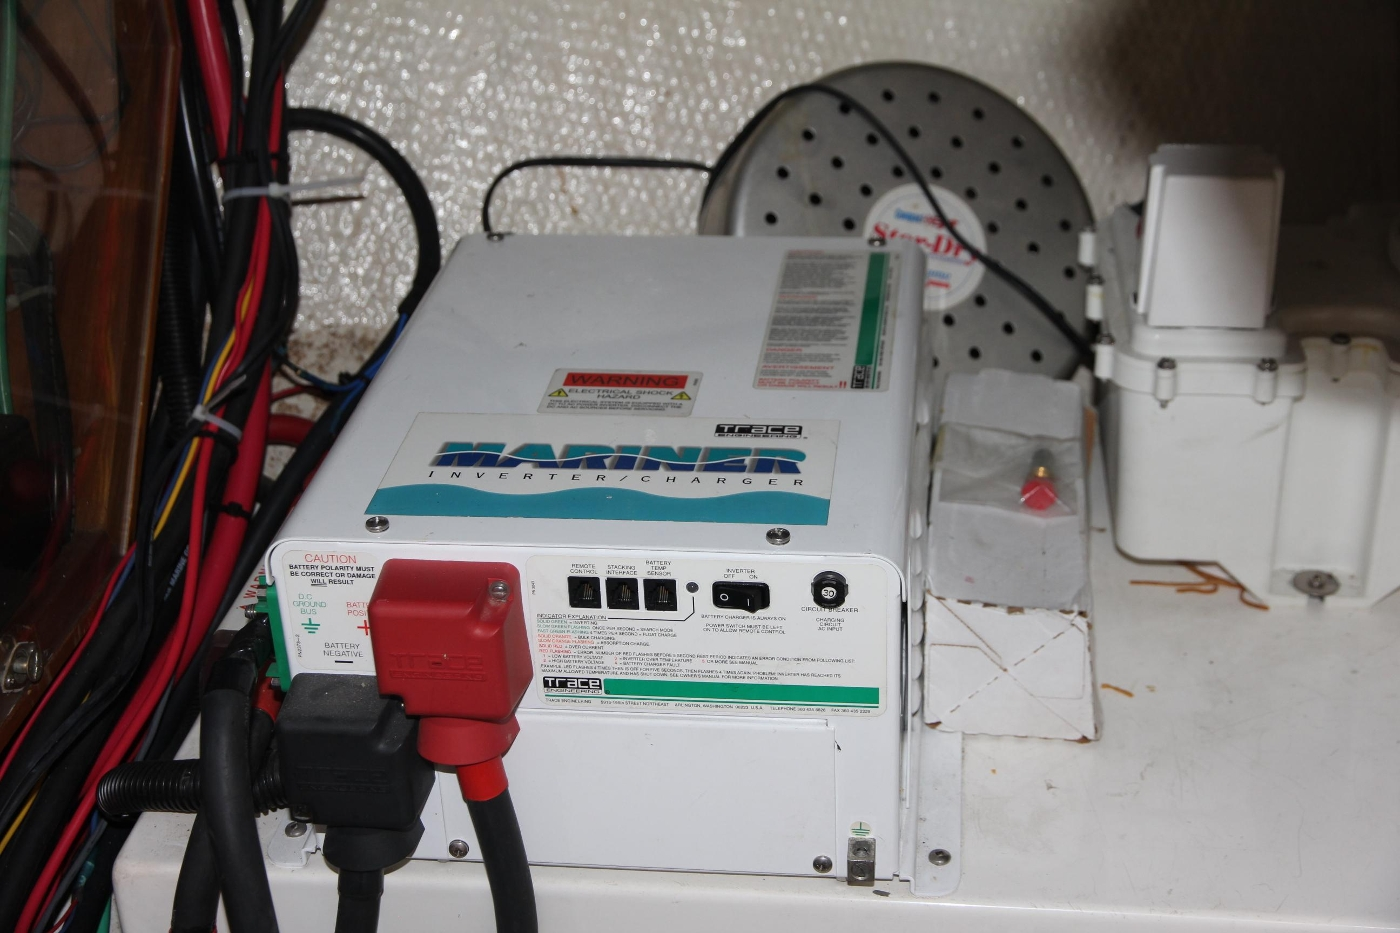 2001 Grand Banks 42 Classic, Inverter Charger